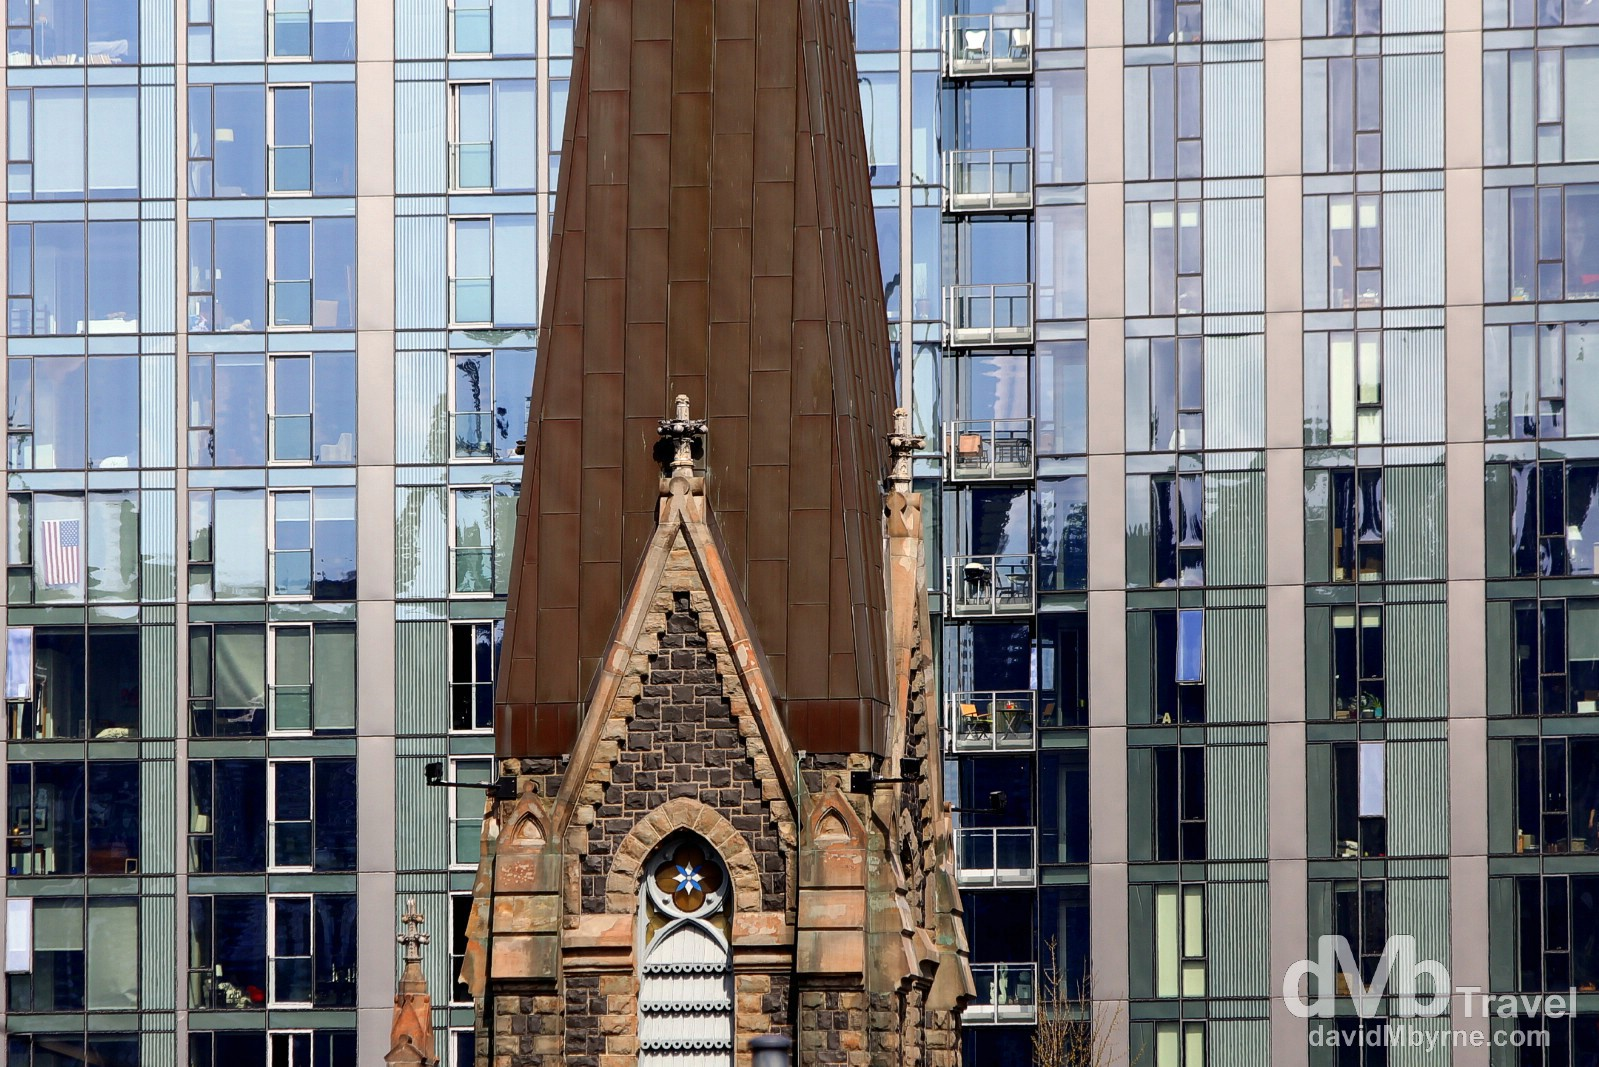 Old & new. A portion of the spire of the First Presbyterian Church set against an office & residential block in Portland, Oregon, USA. March 28, 2013.